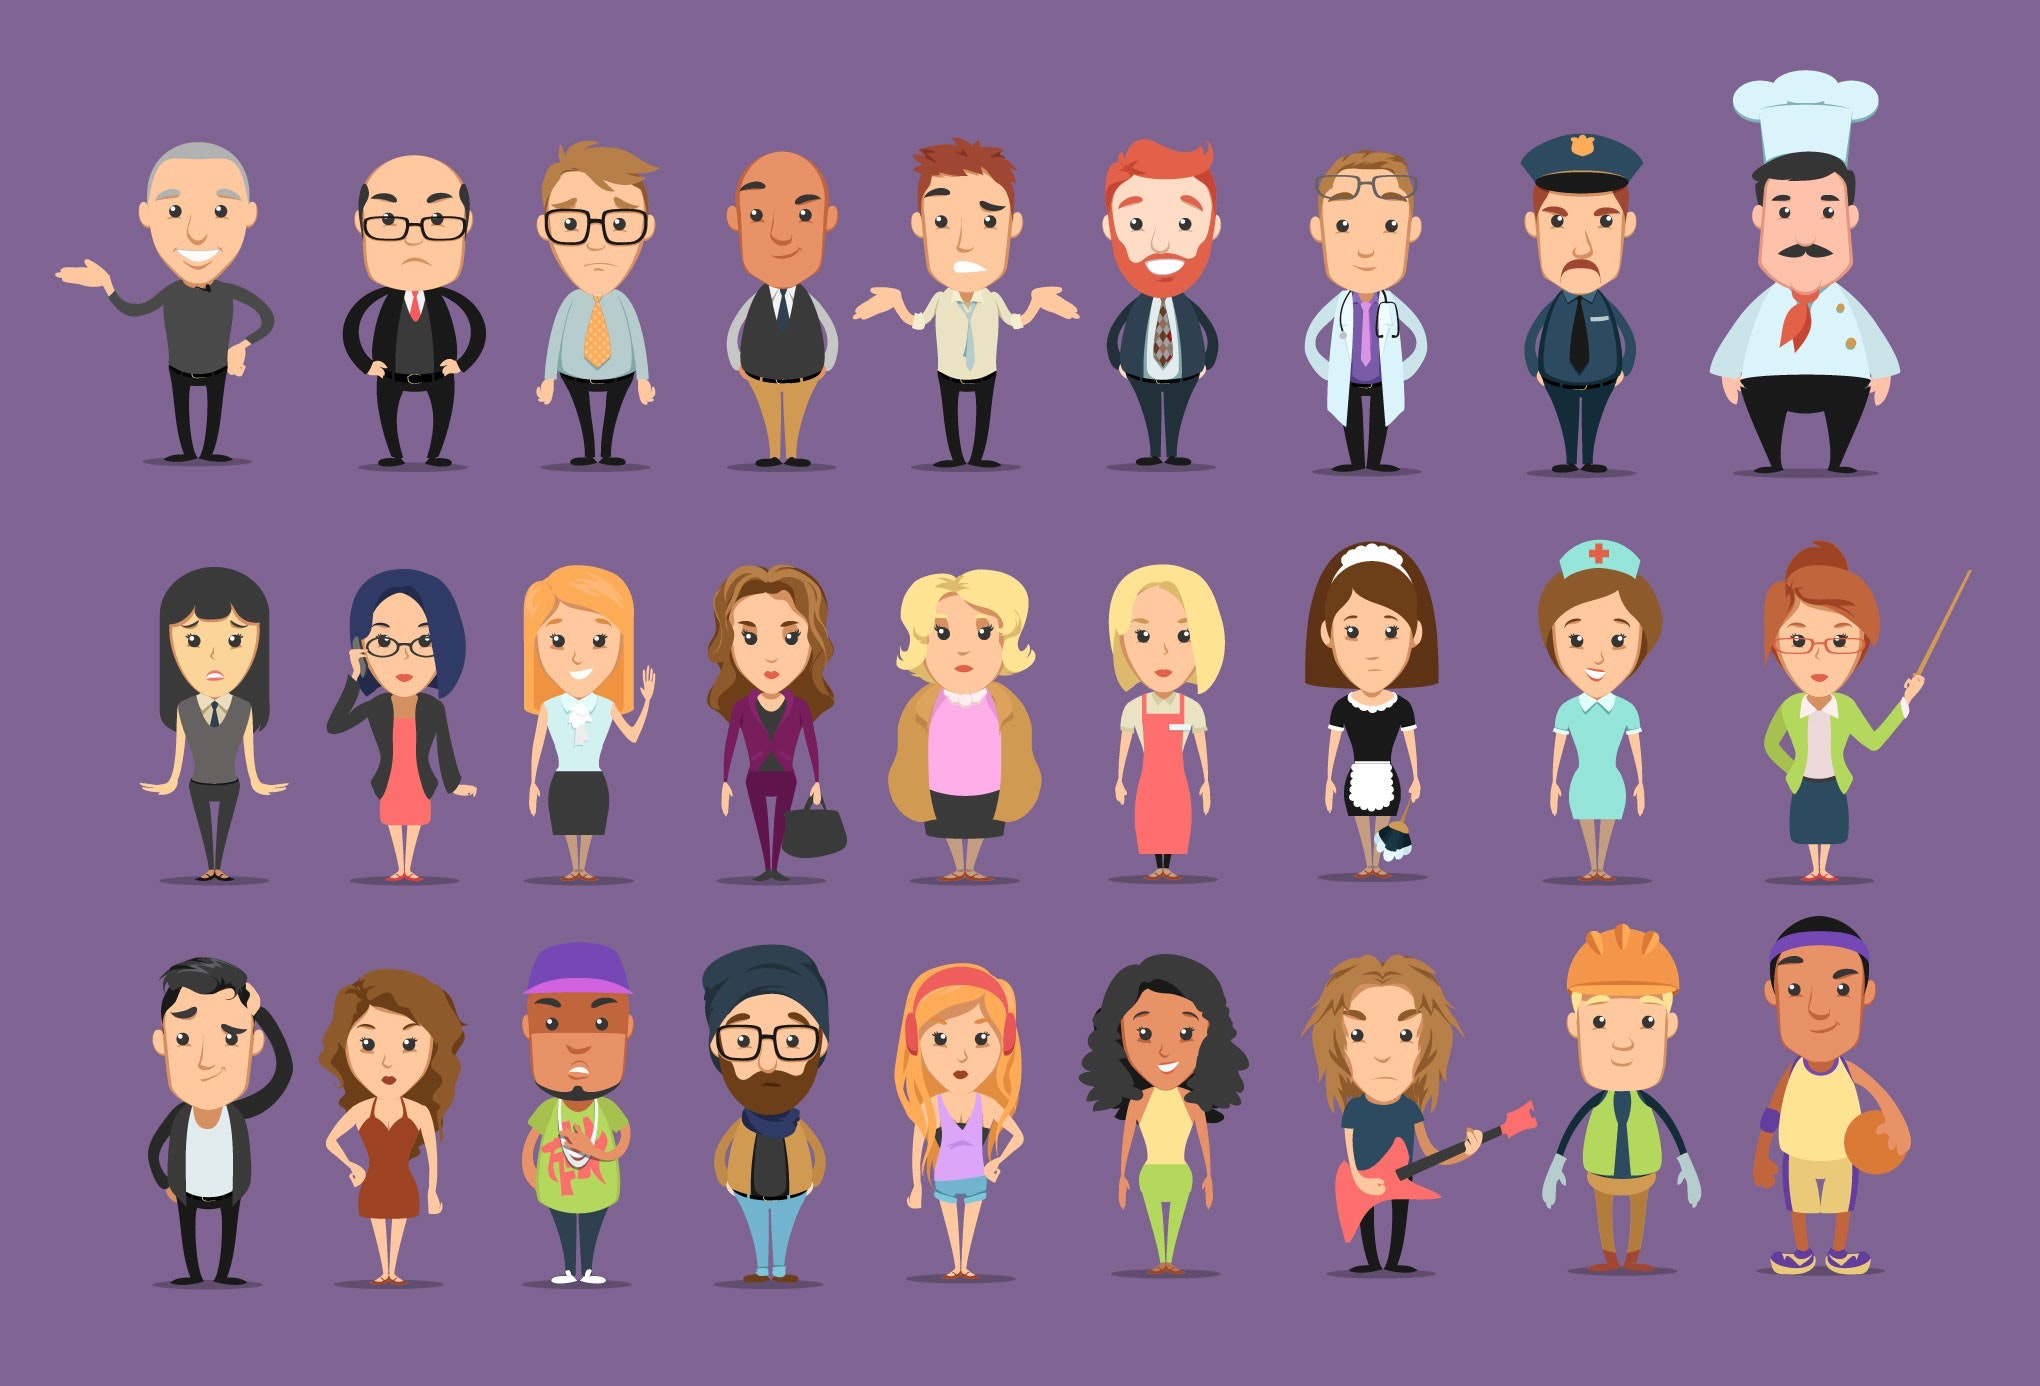 A series of flat design illustration showing different kinds of people